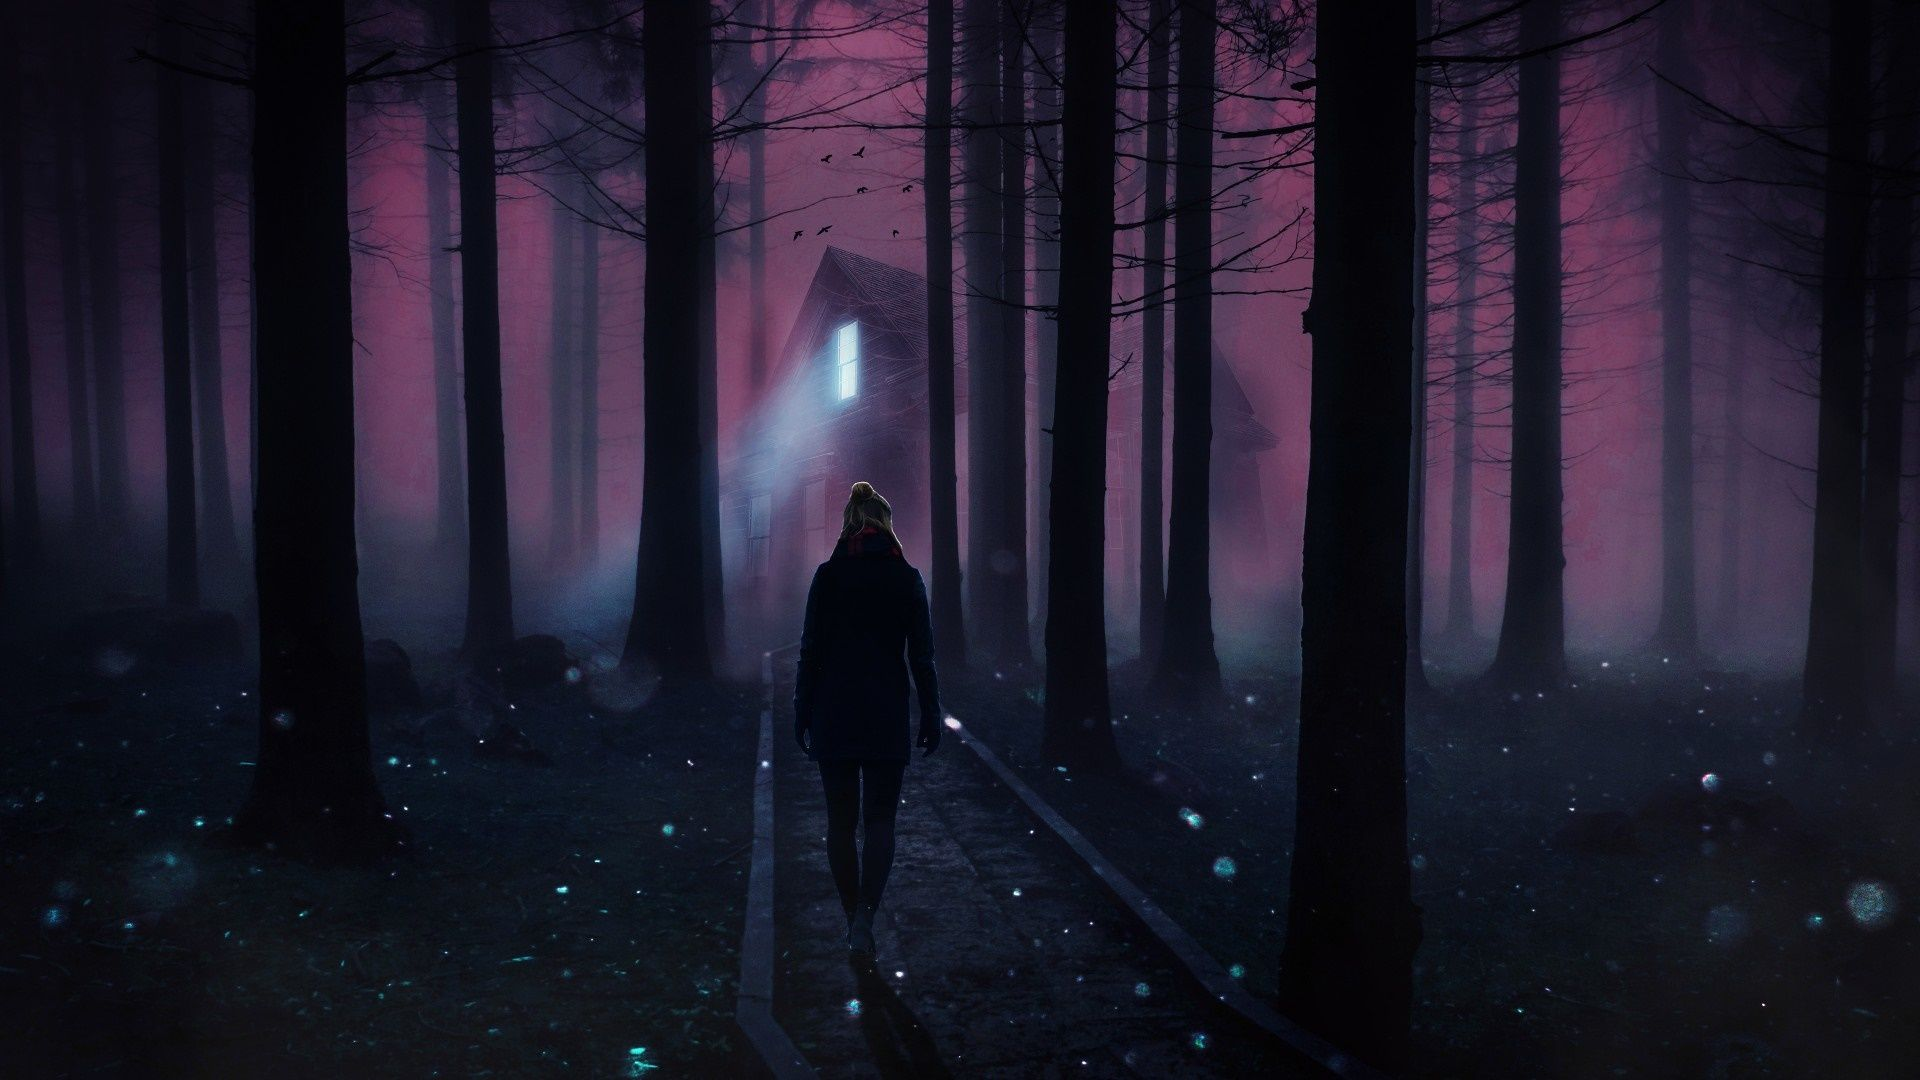 Forest At Night In The Fog, Ghosts In The Night Forest wallpaper